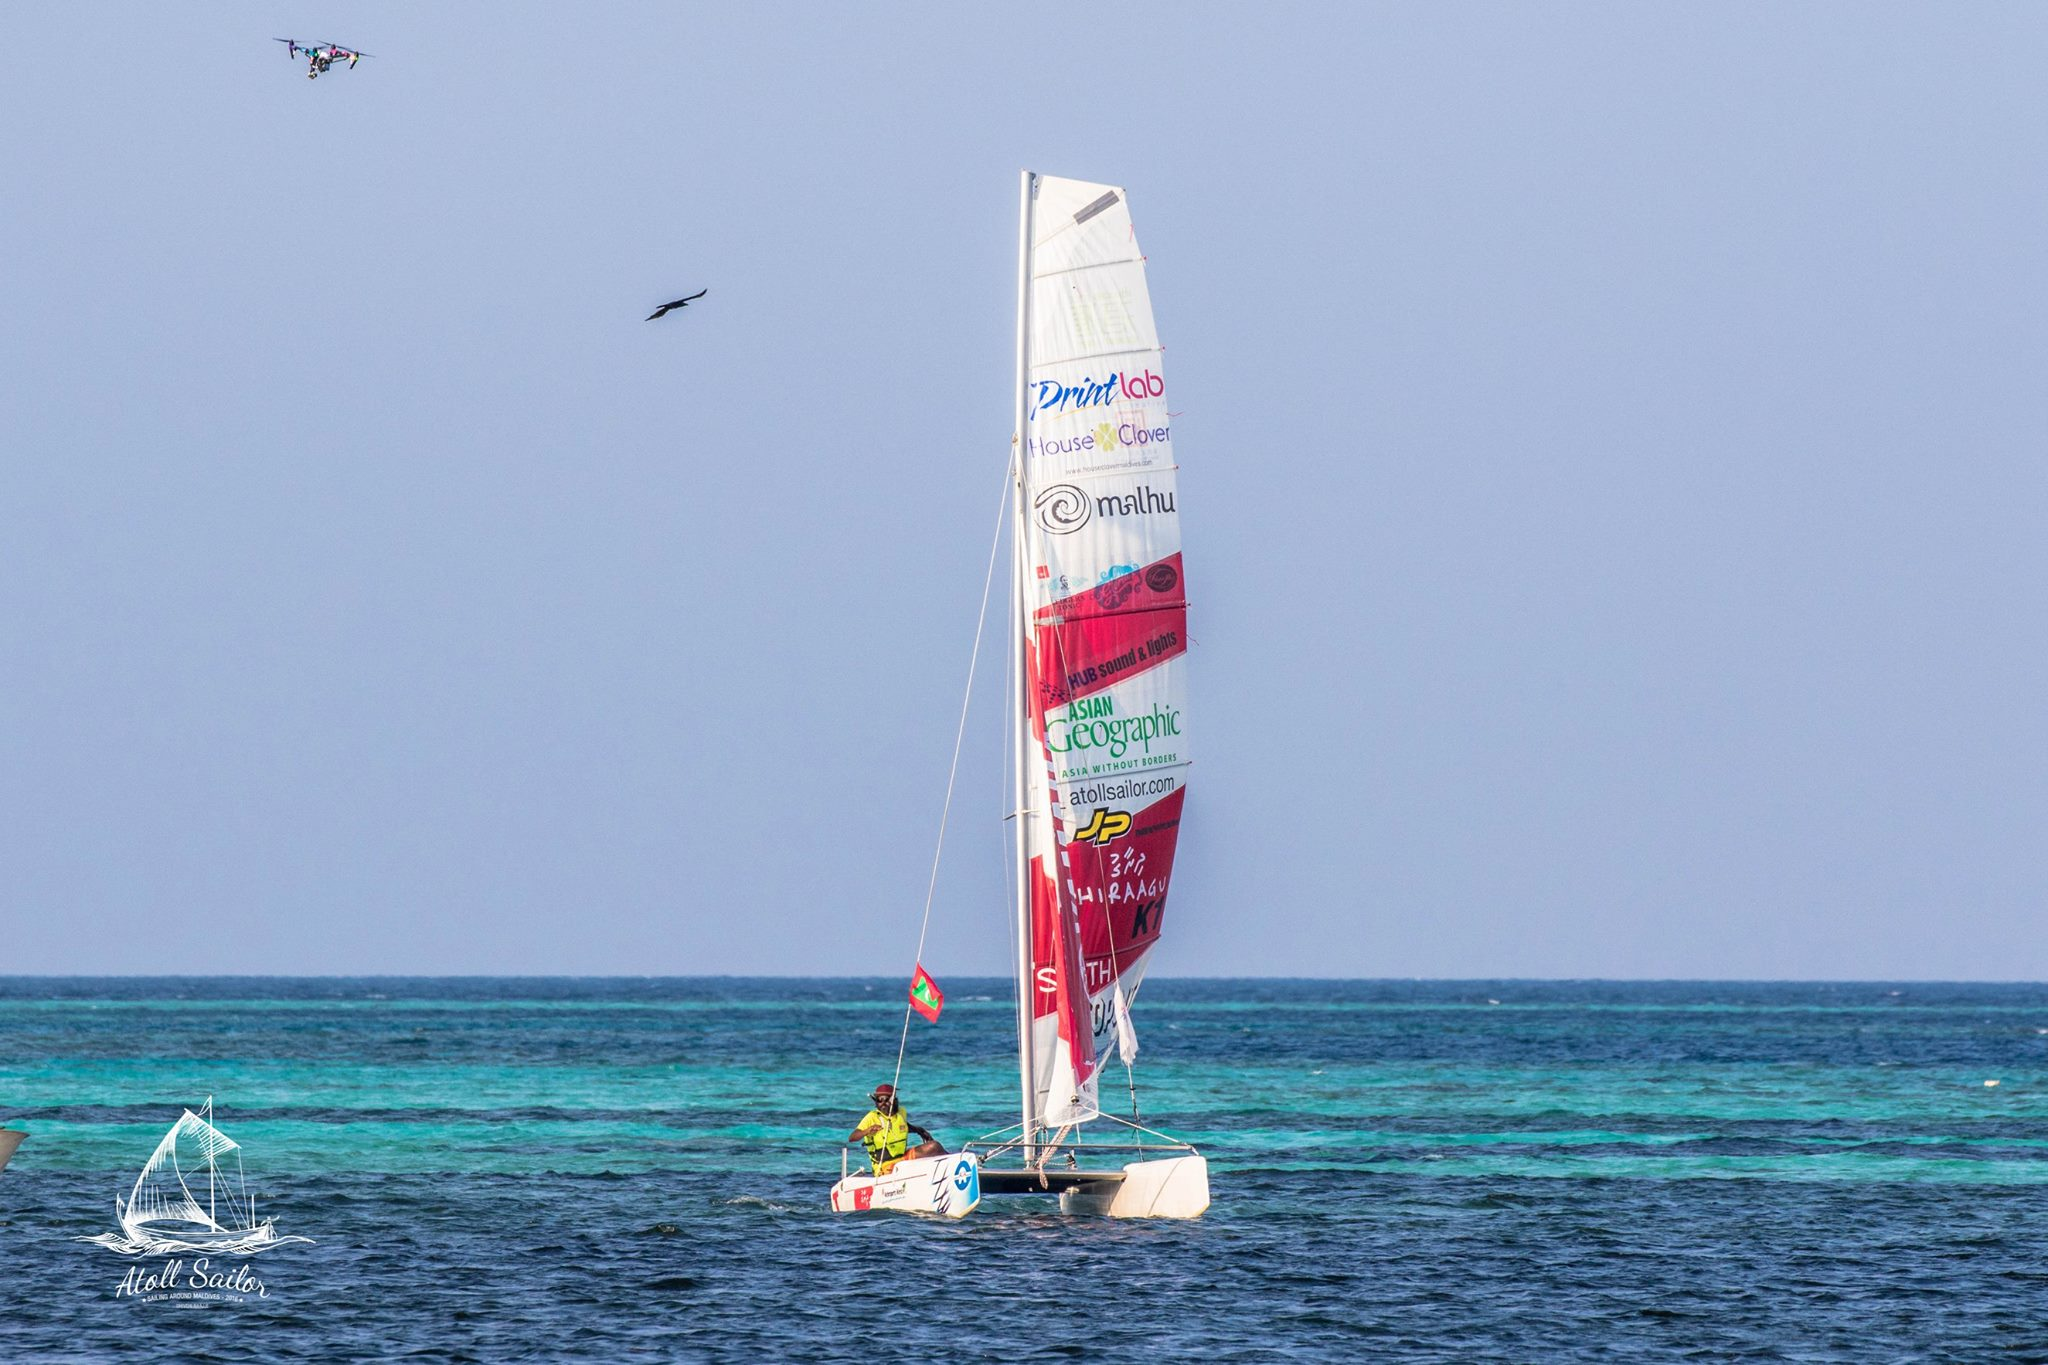 Maldive in catamarano